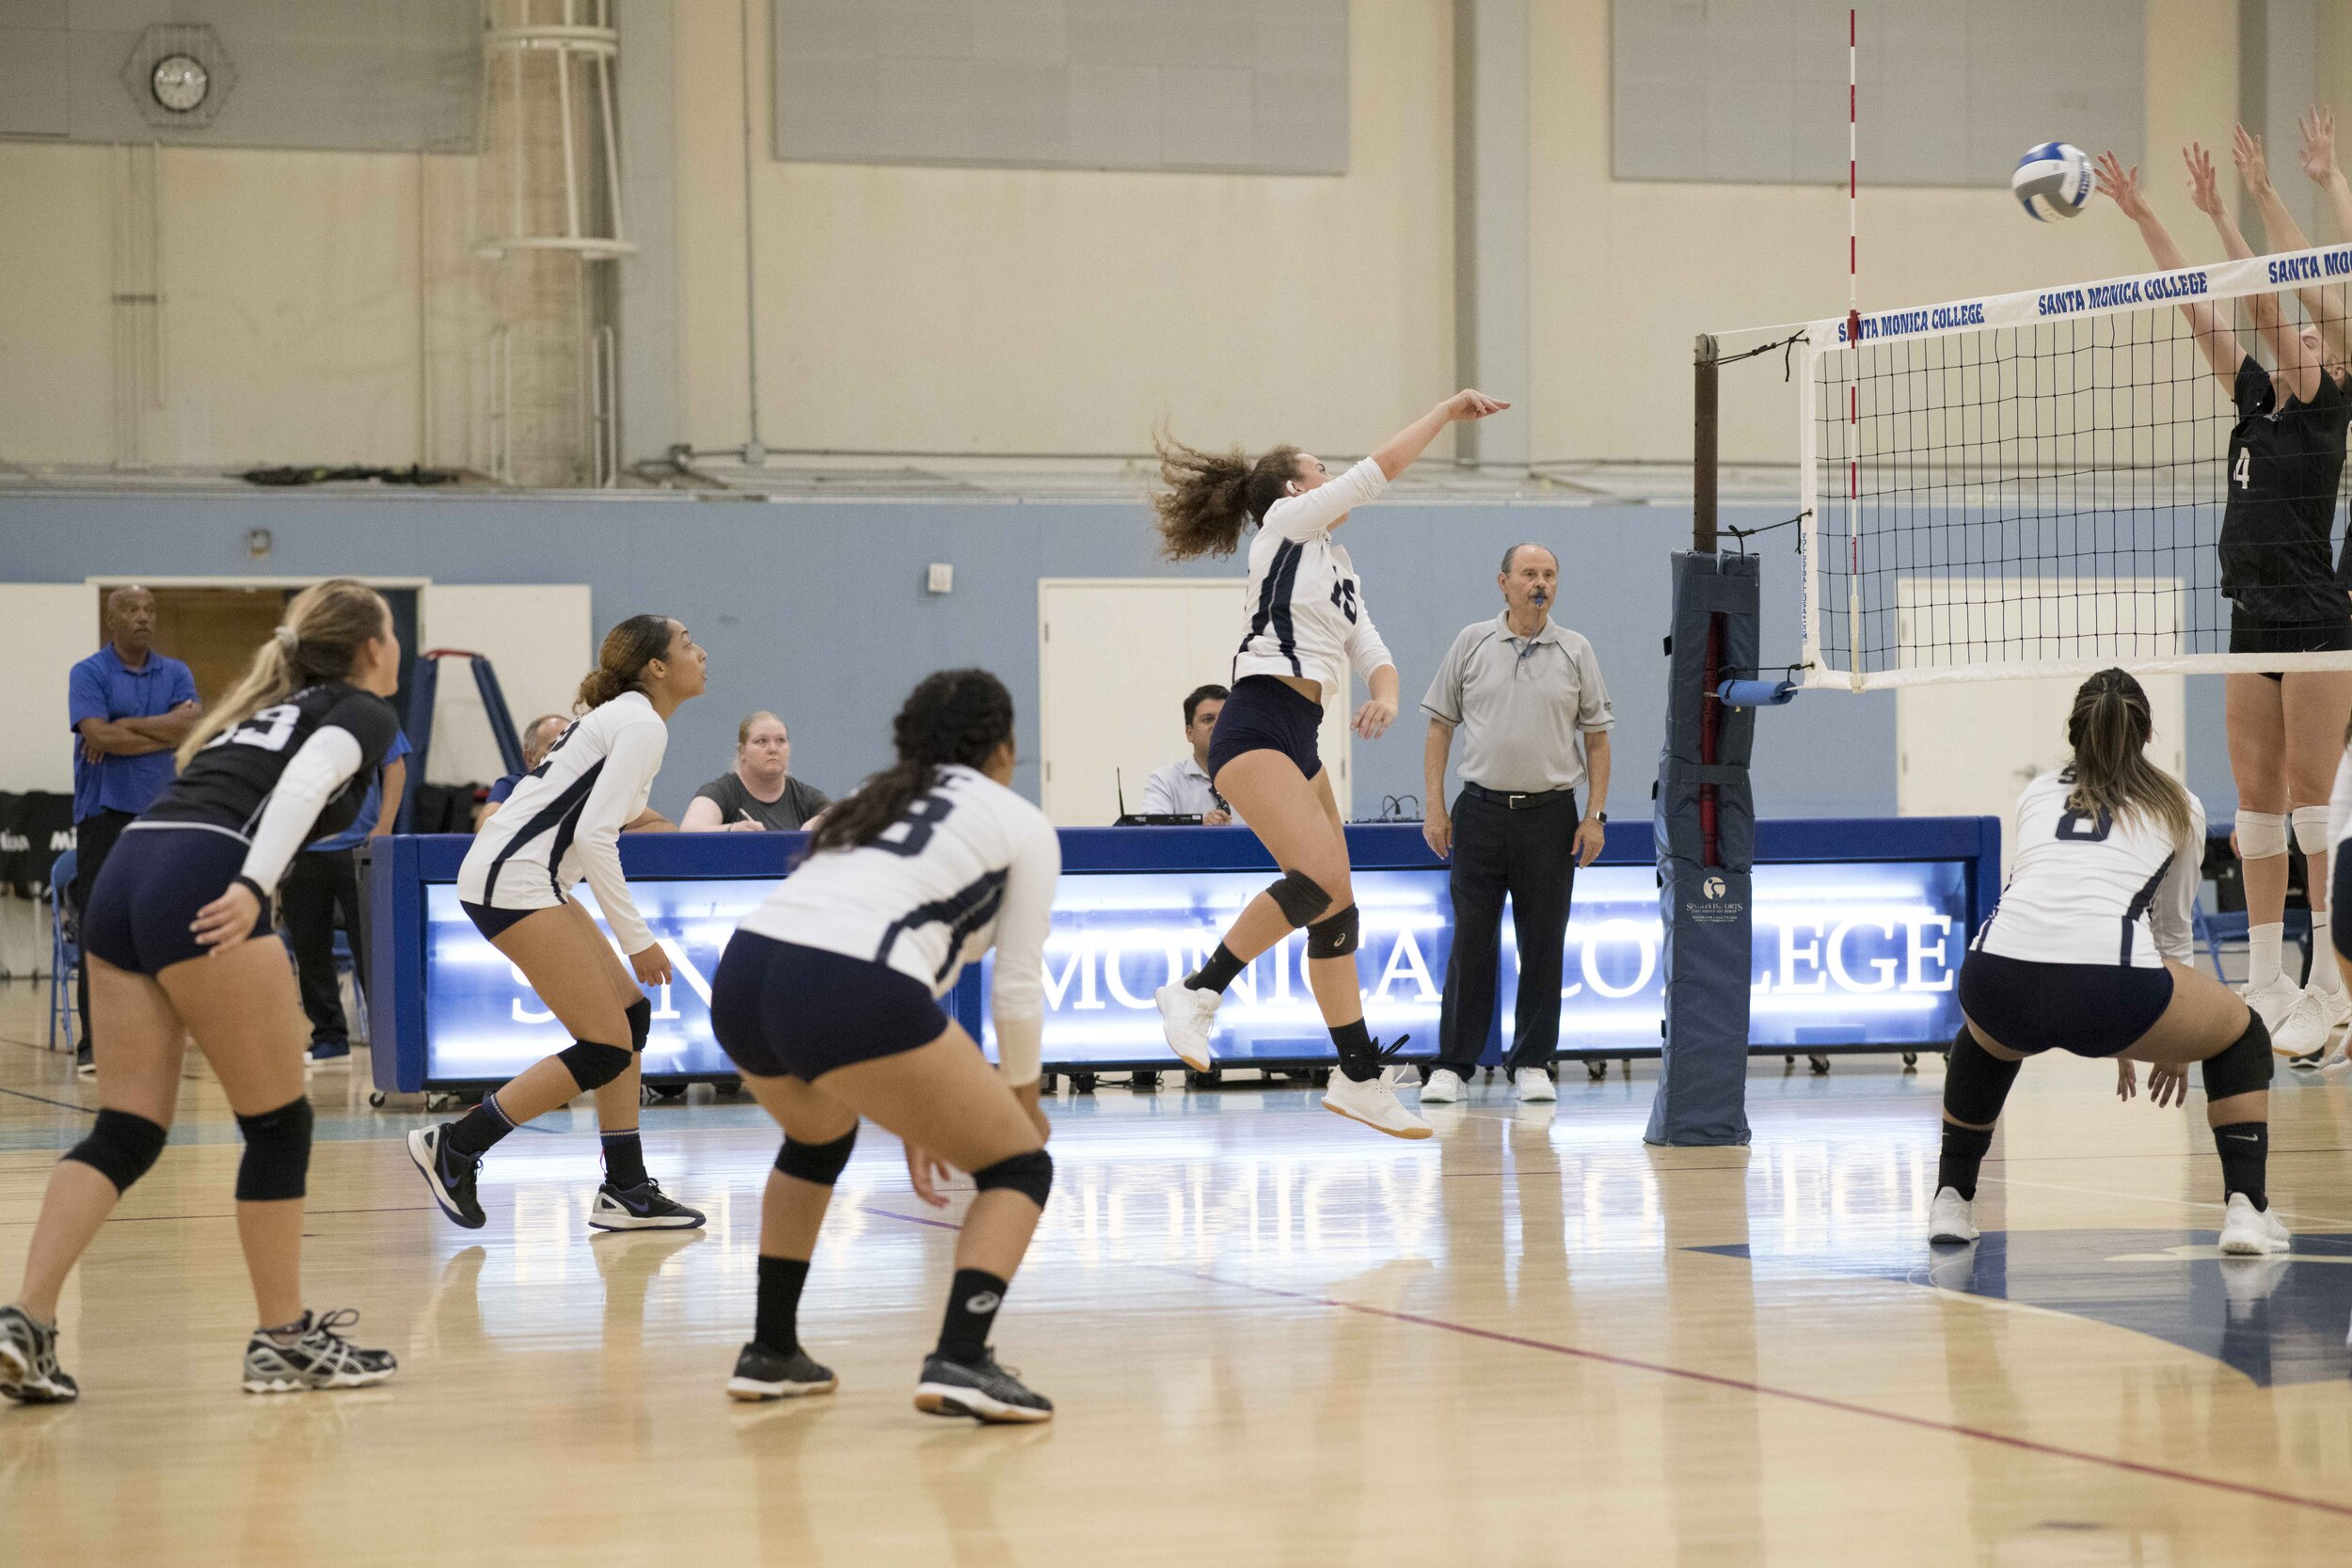 Camila Wilson #15 goes for a kill to help the Corsair's score. (Photo by Kevin Tidmore/The Corsair)